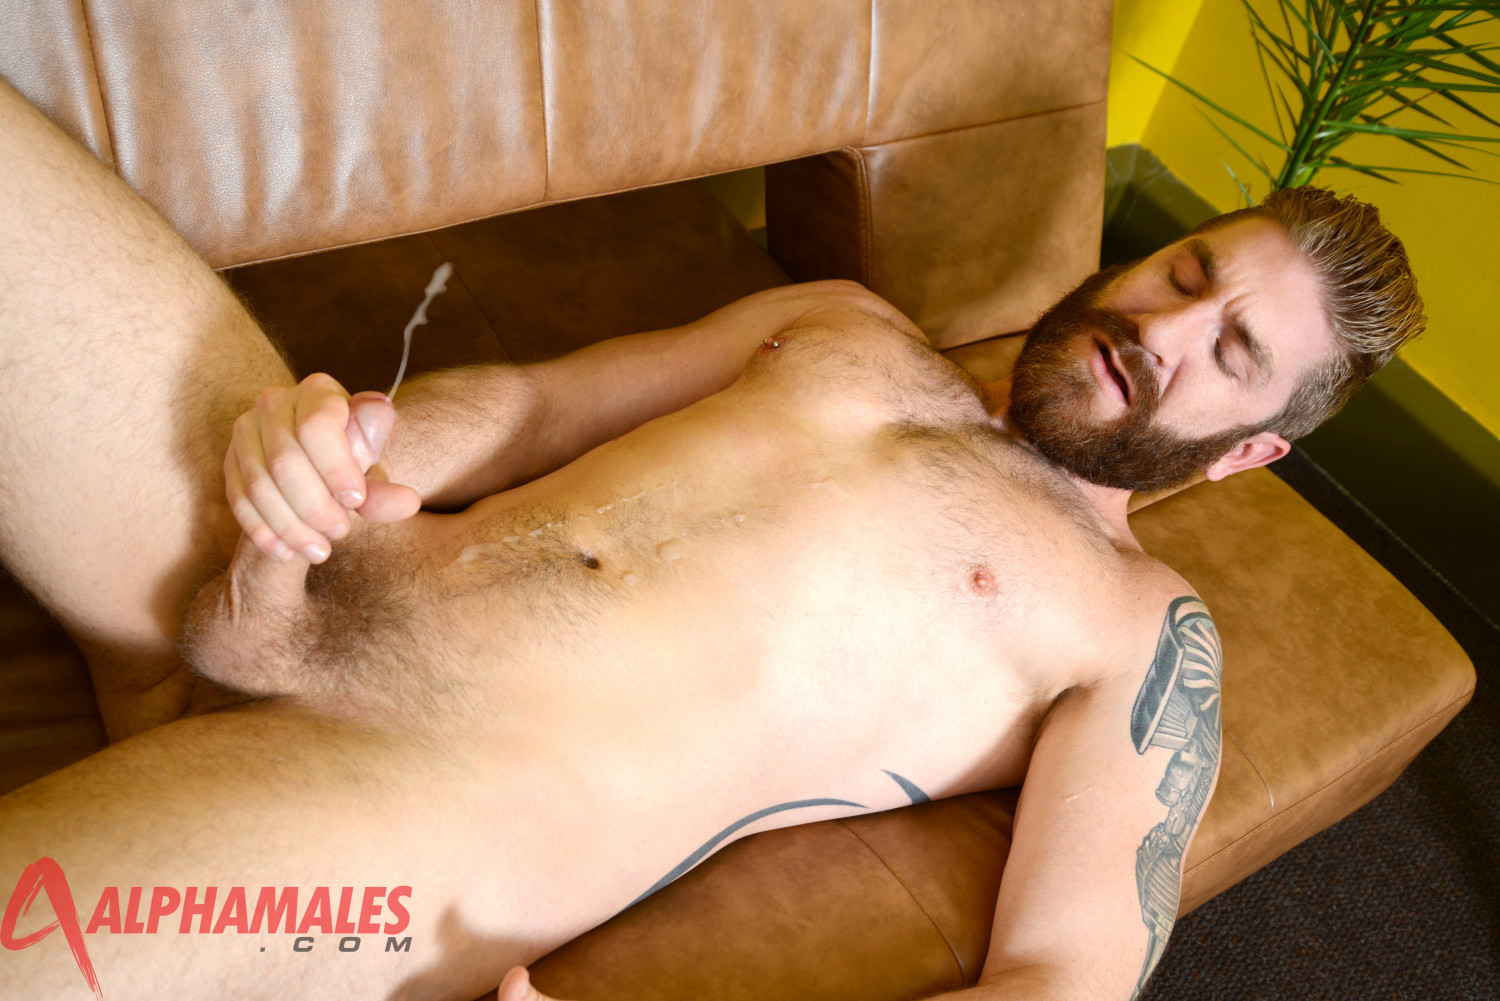 AlphaMales-Geoffrey-Paine-Big-Cock-Fleshlight-Fleshjack-Amateur-Gay-Porn-09 Amateur Hairy Muscle Stud Geoffrey Paine With Big Cock and Fleshjack